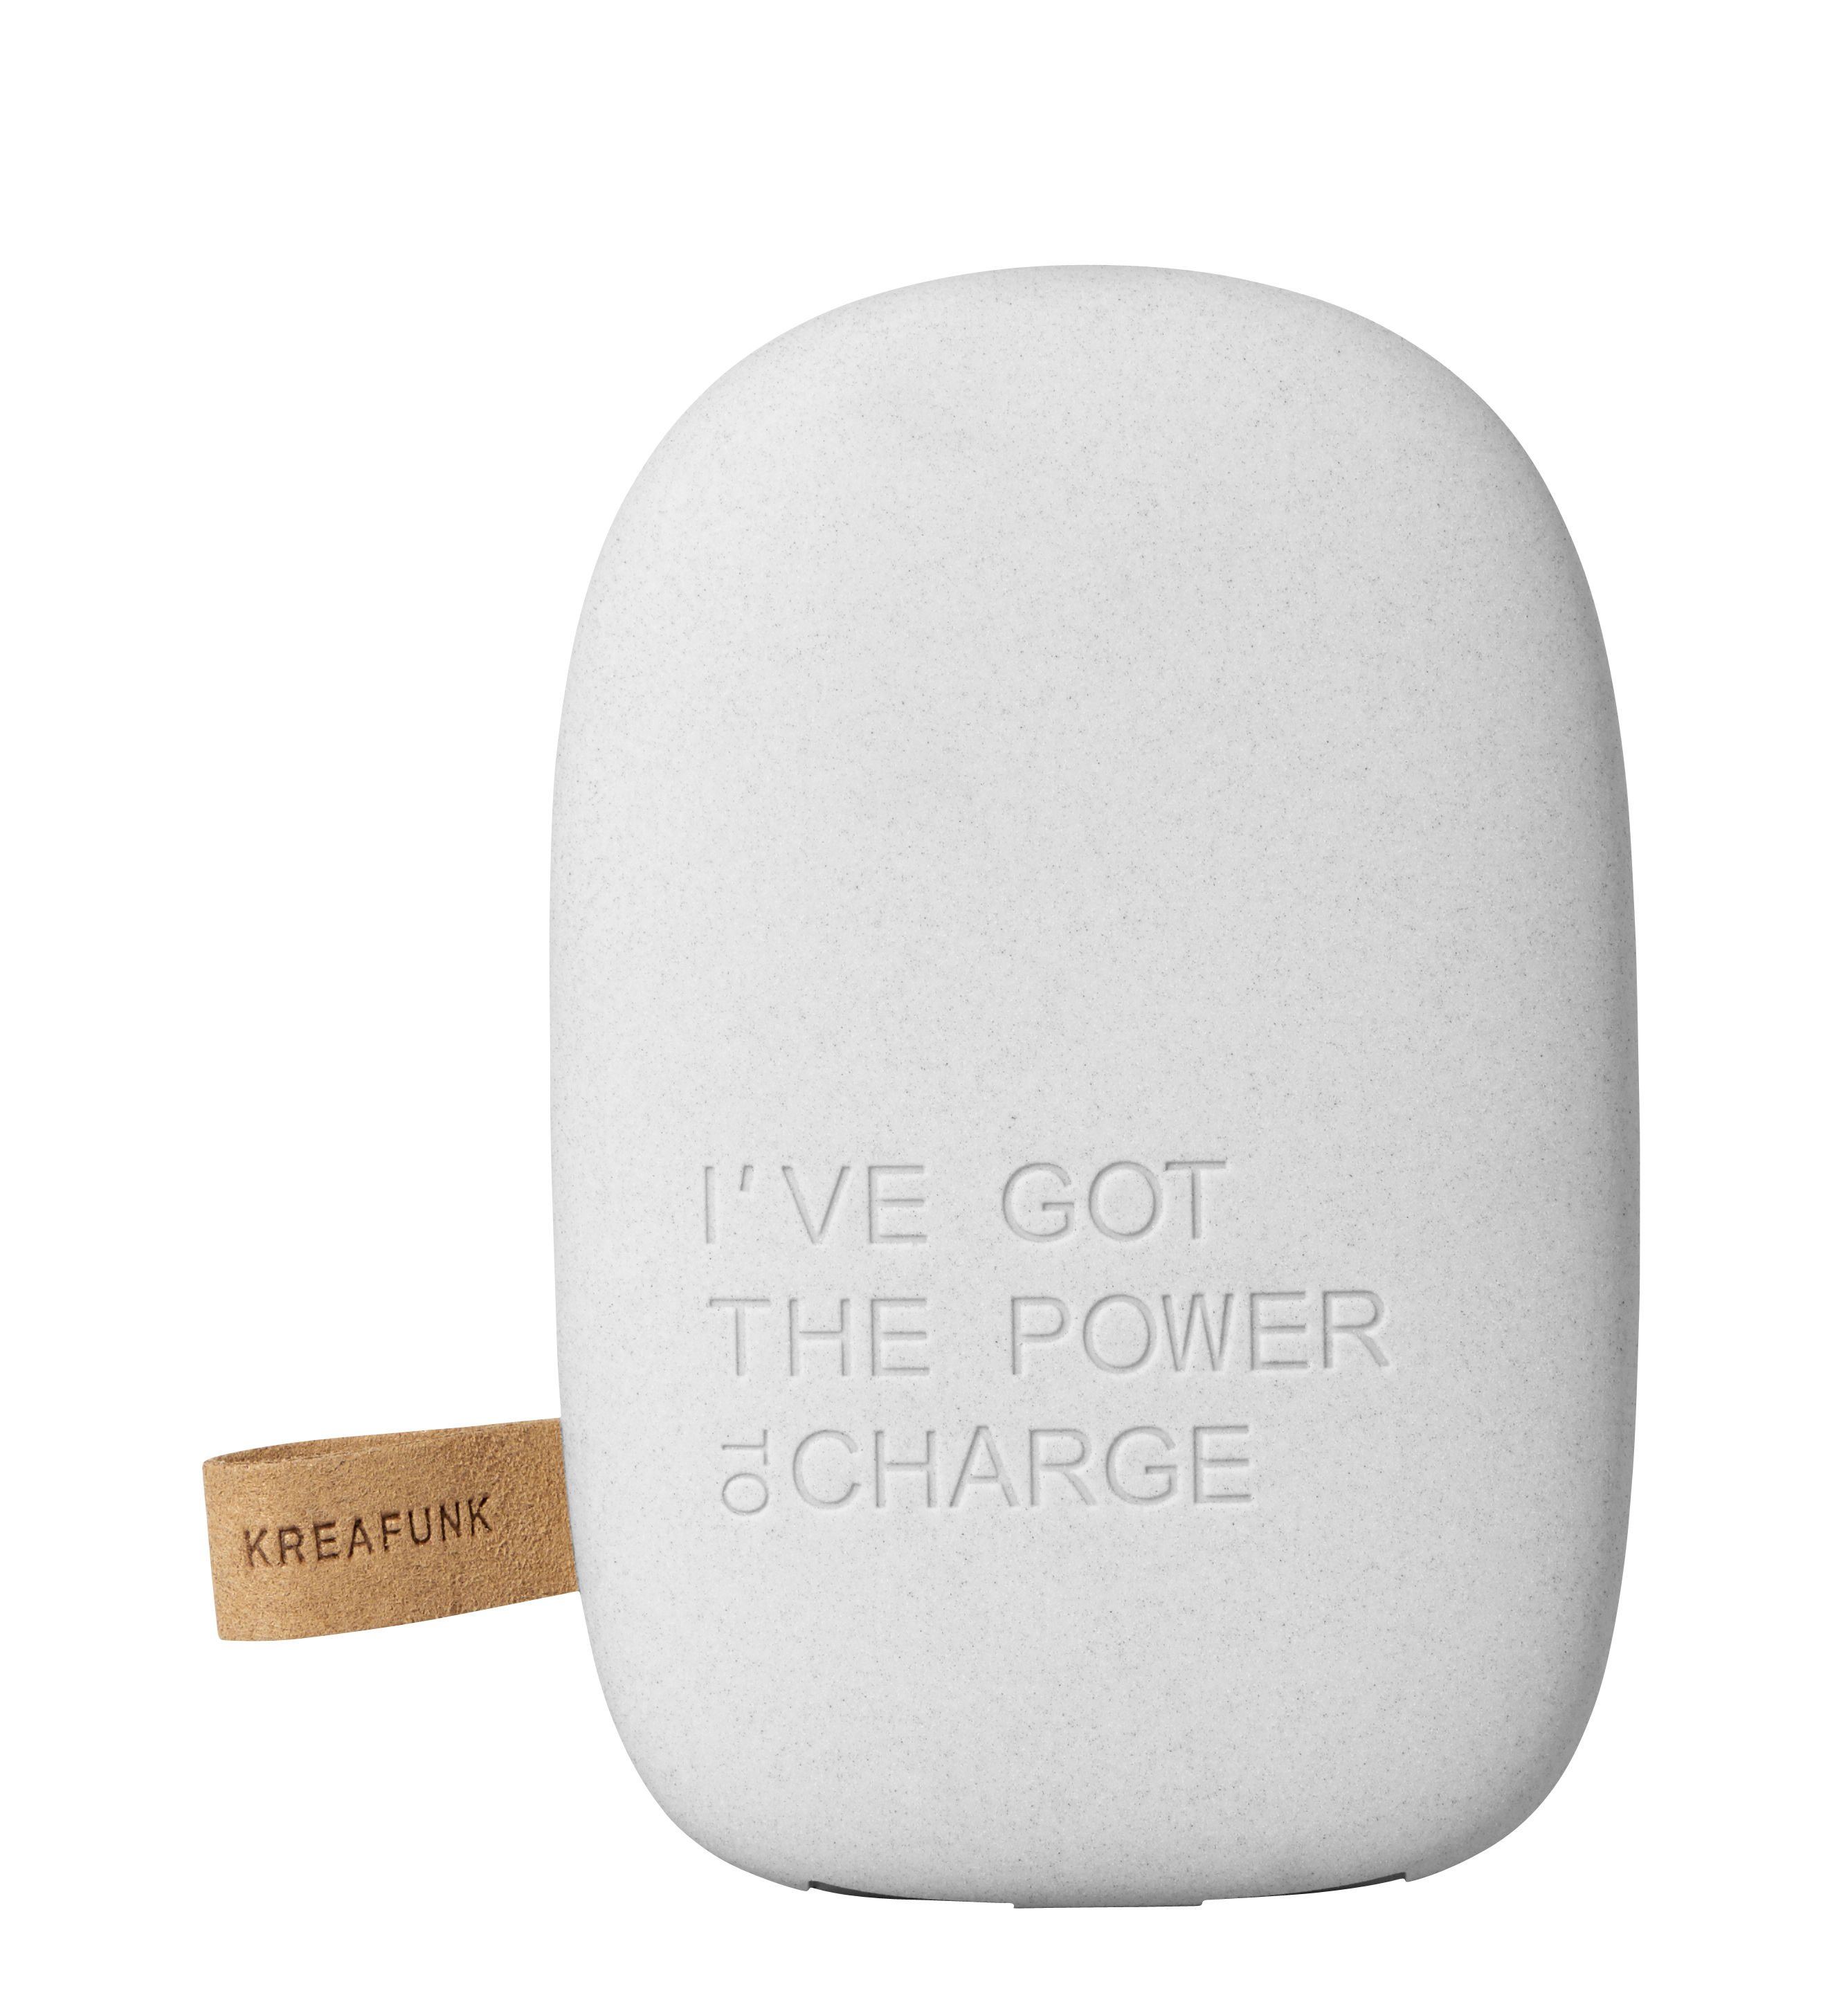 Accessories - High Tech Accessories - toCharge Backup battery - Suitable for all smartphones by Kreafunk - Light grey - Plastic material